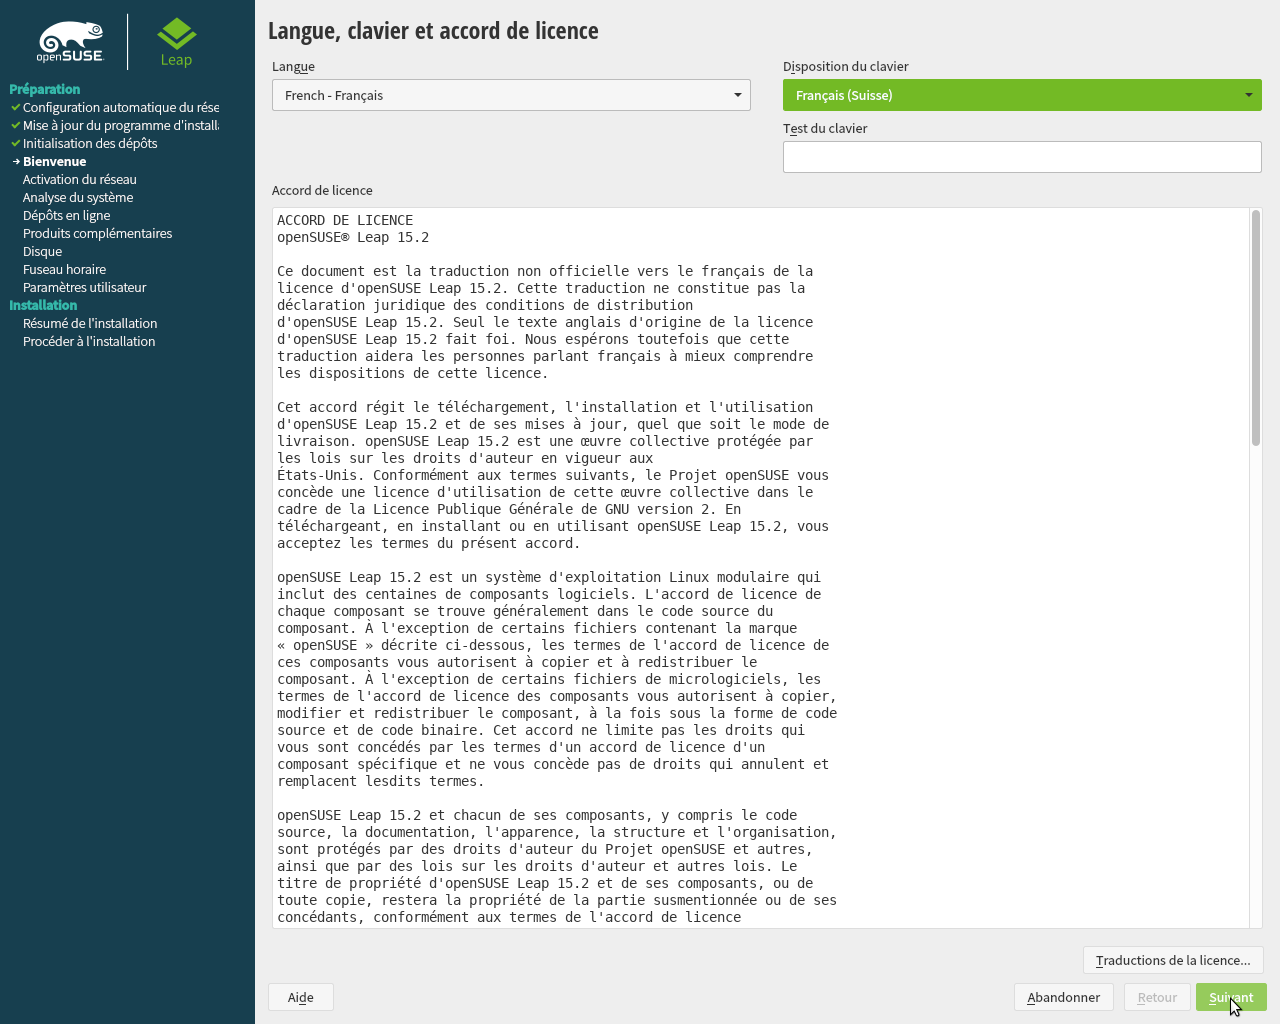 OpenSUSE Leap 15.2 Installation